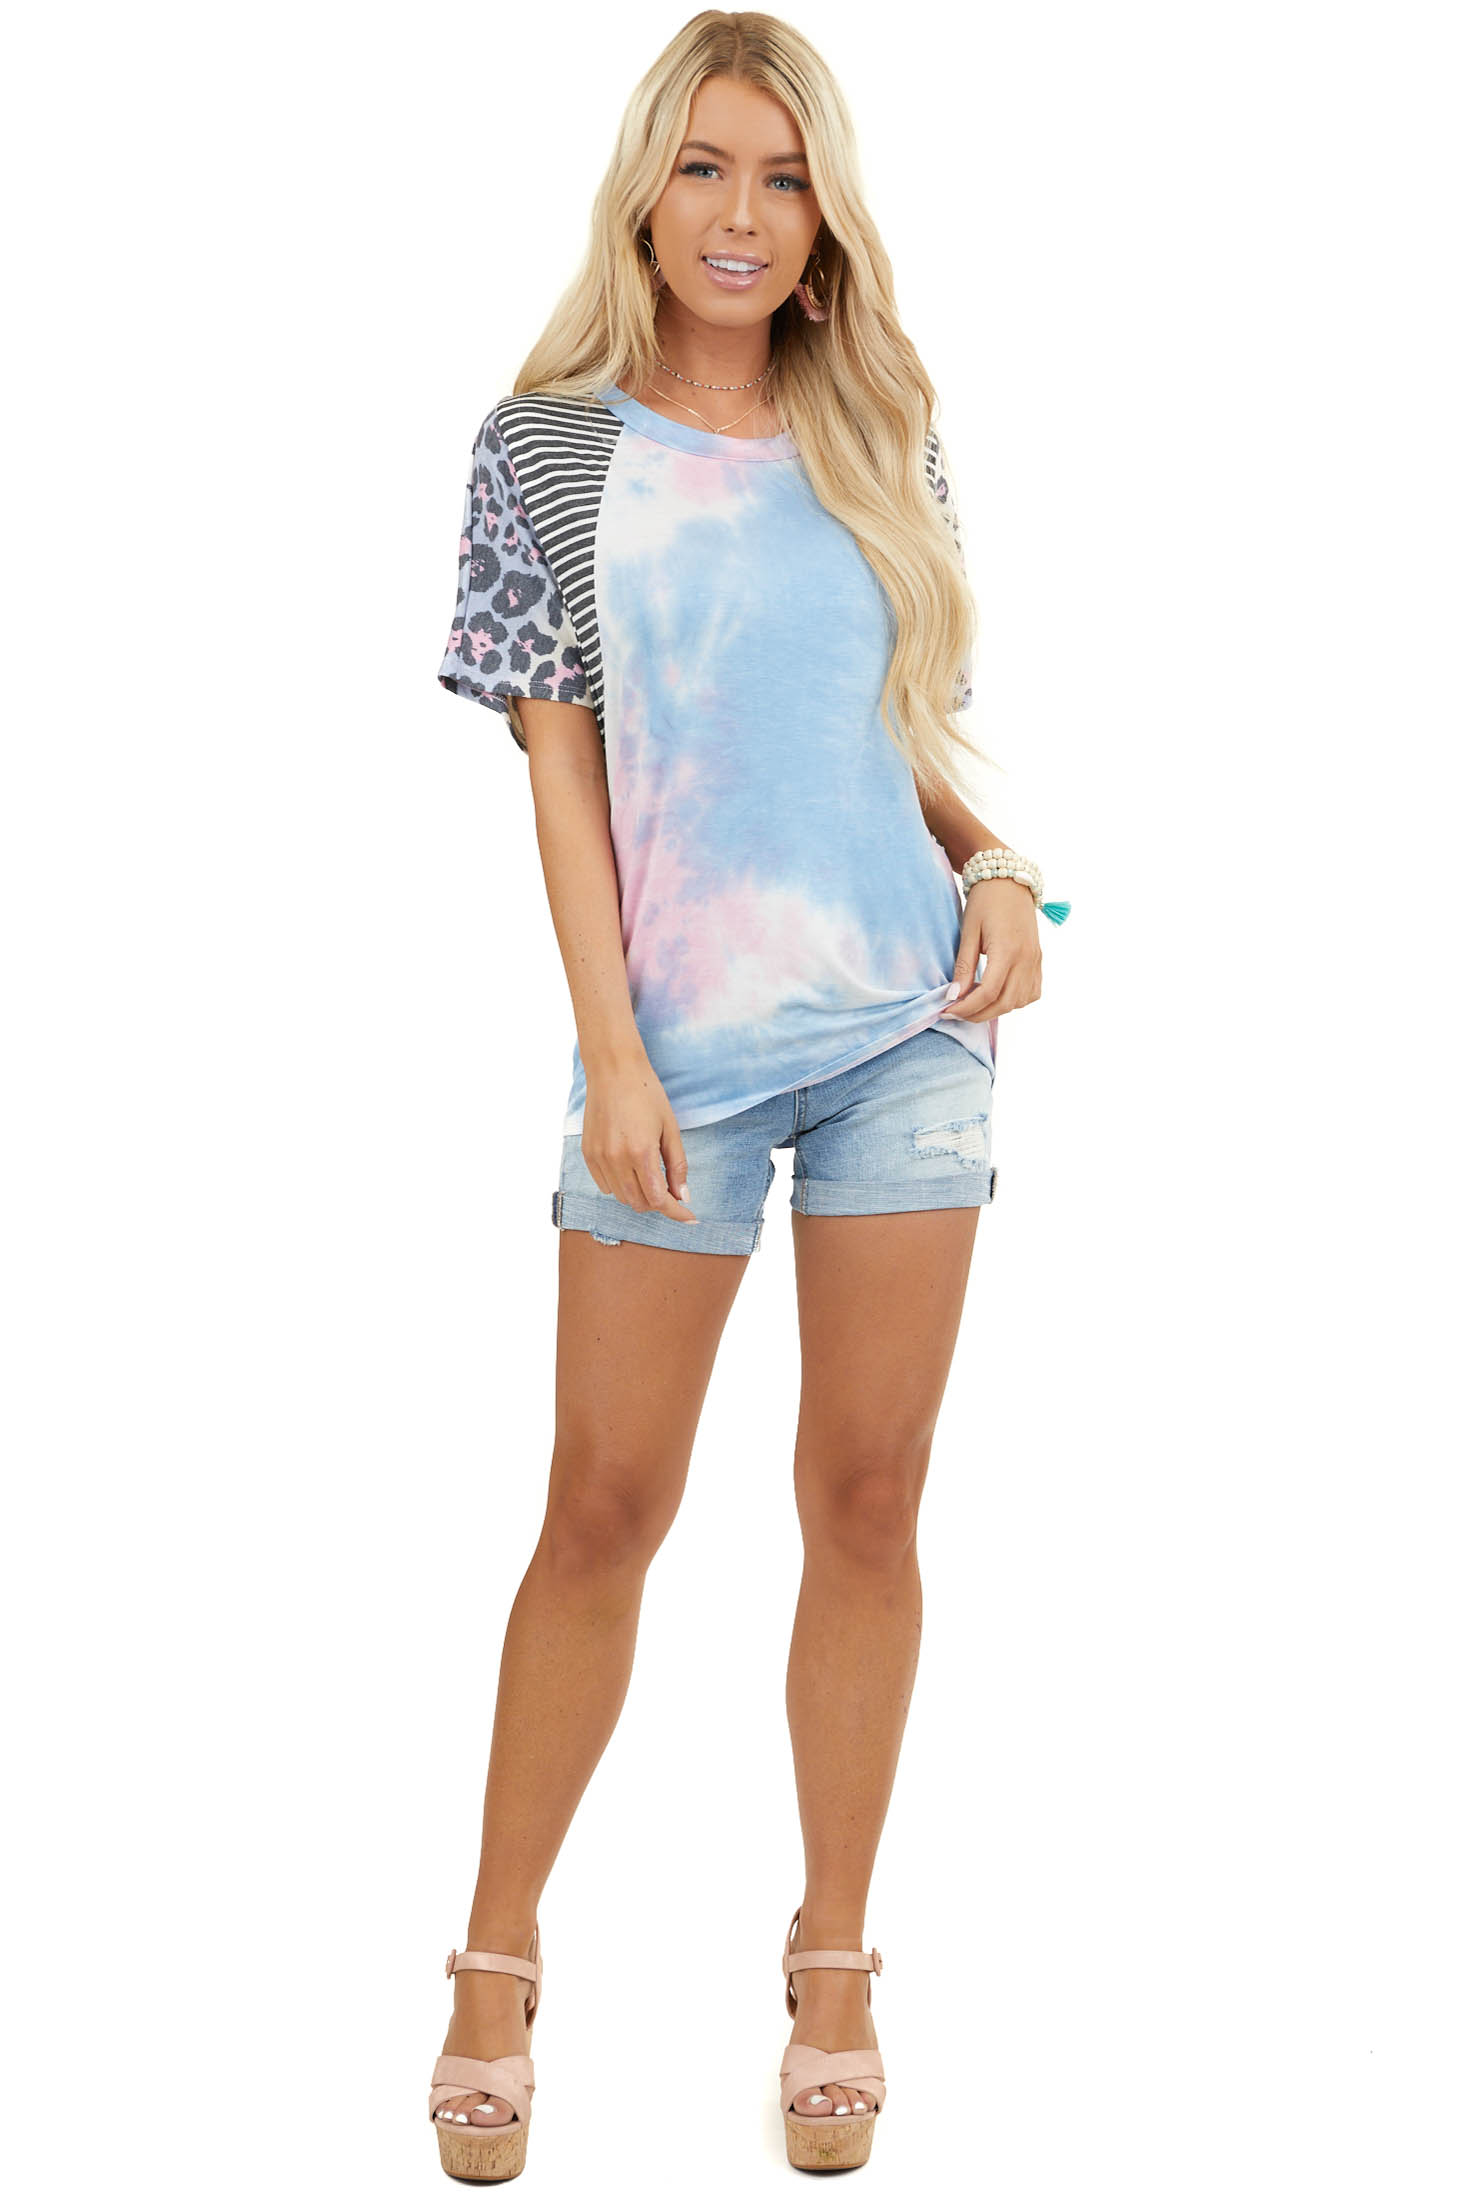 Pink Multiprint Knit Top with Dolman Short Sleeves